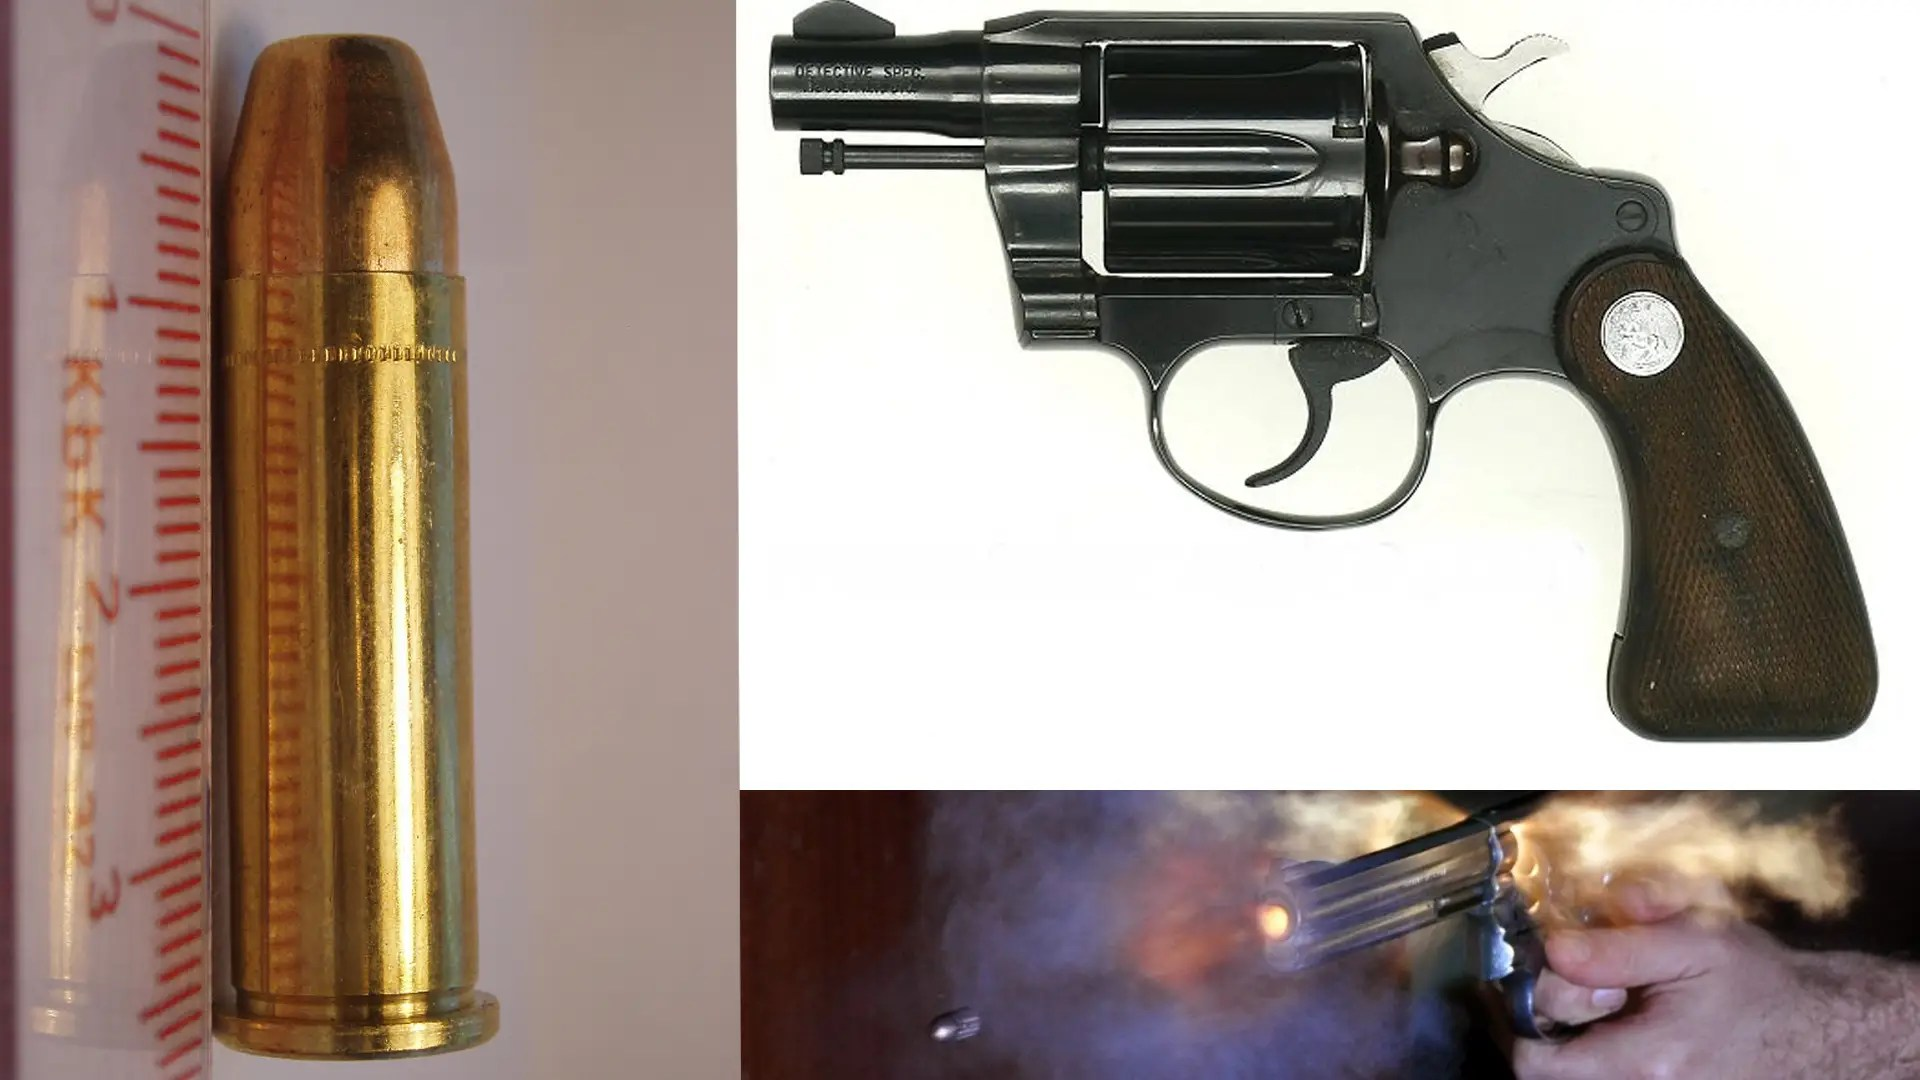 The .38 Special Police Revolver — Unlike early revolvers, which were single action — meaning that pulling the trigger performed only the action of releasing the hammer, and the shooter had to pull the hammer back — the .38 special was double action, meaning it did not have to be cocked.